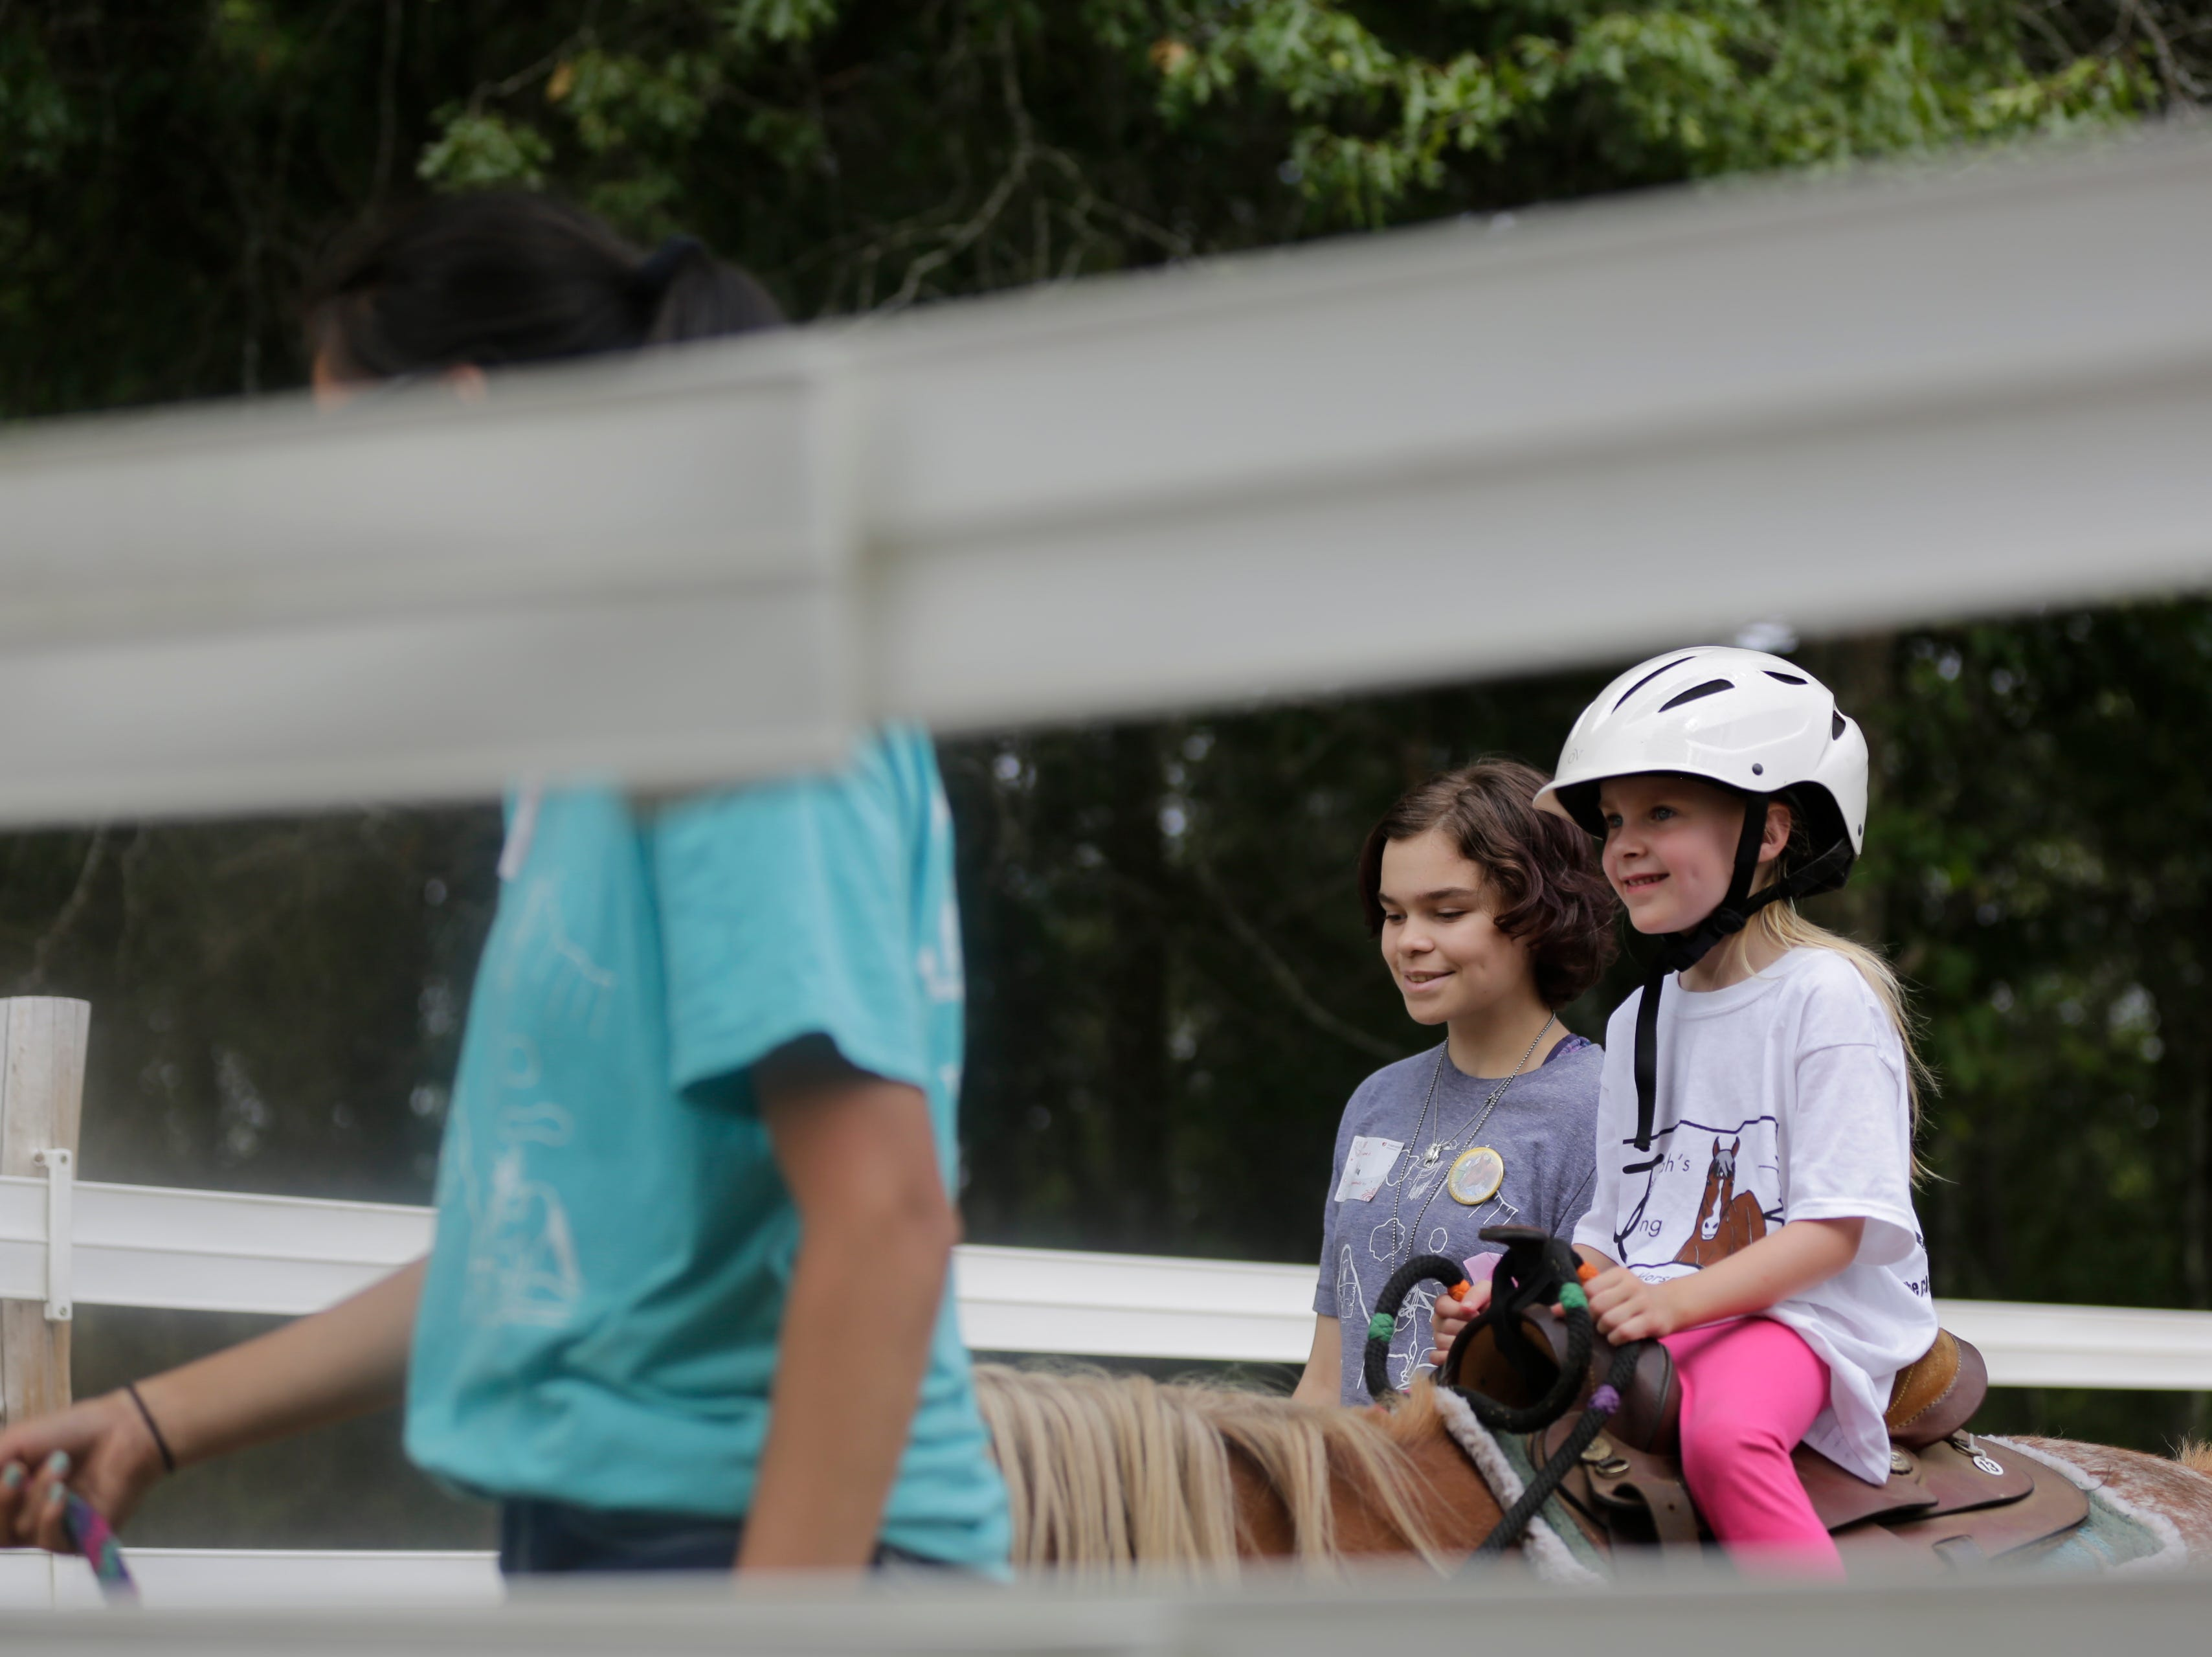 Ellie Budtke, 5, rides Jazzy the horse during the Jeremiah's Crossing ride-a-thon Sunday, August 19, 2018.